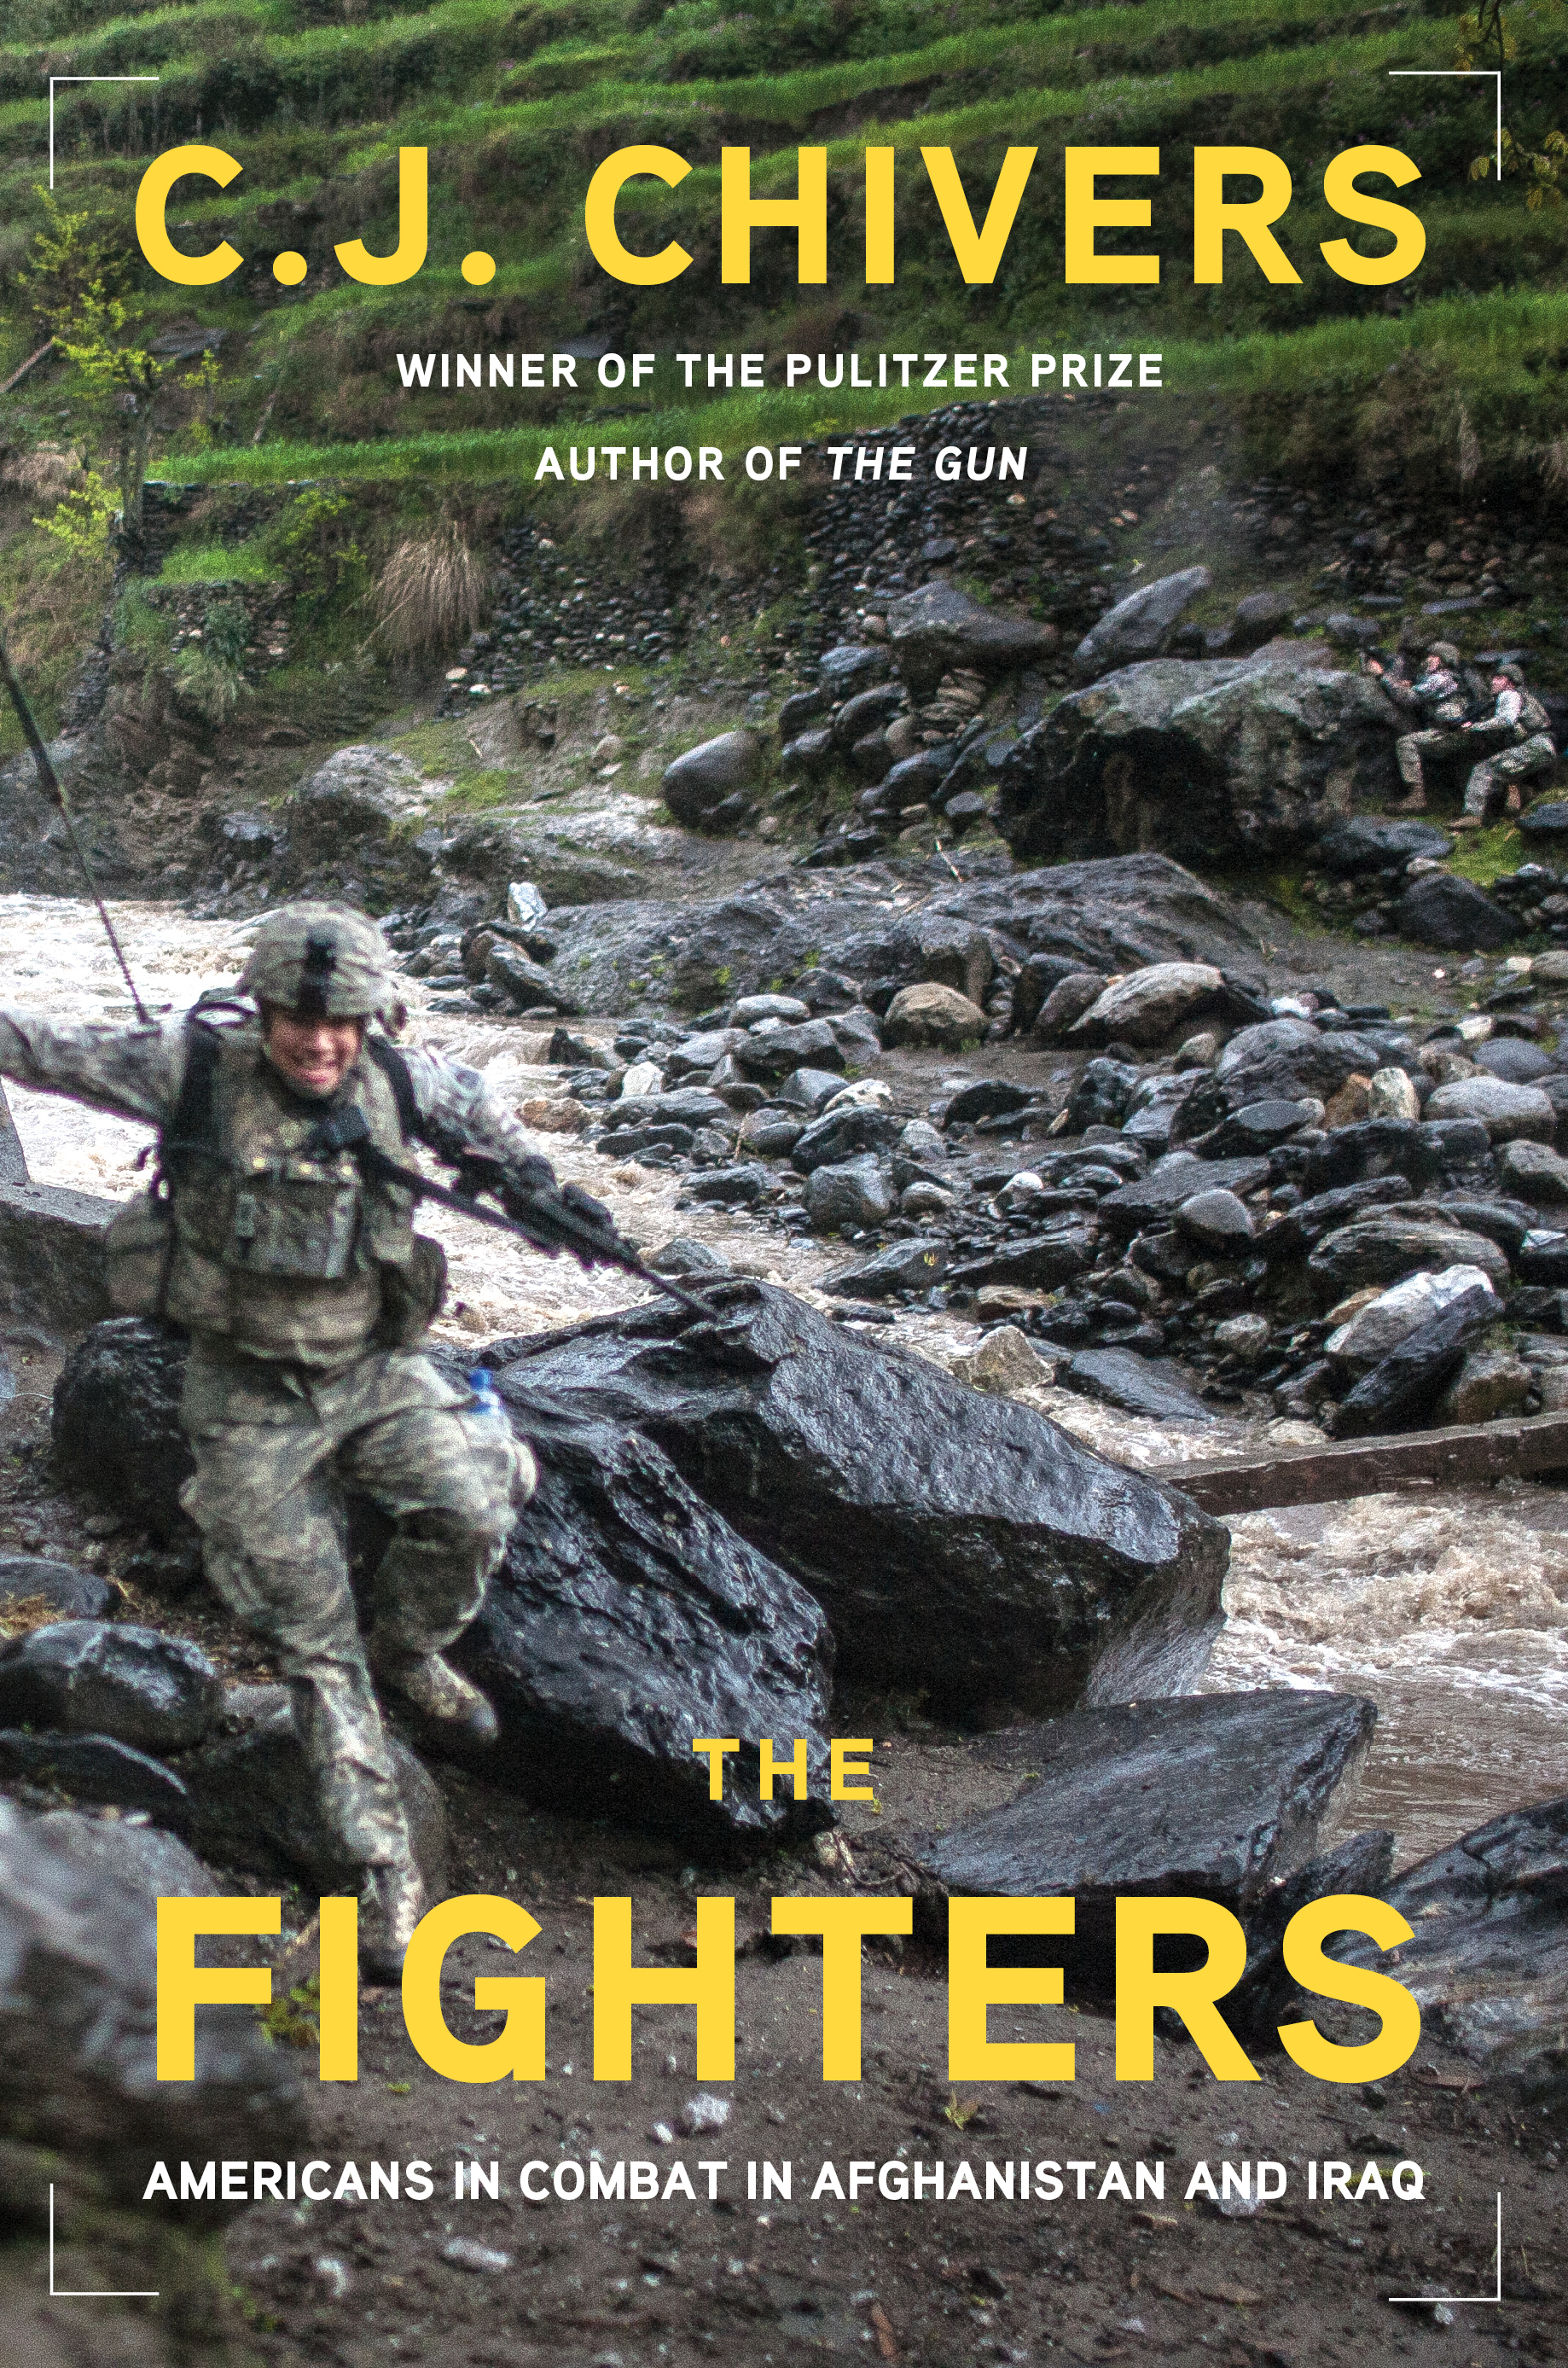 Authors LIVE! presents C.J. Chivers and The Fighters: Americans in Combat in Afghanistan and Iraq